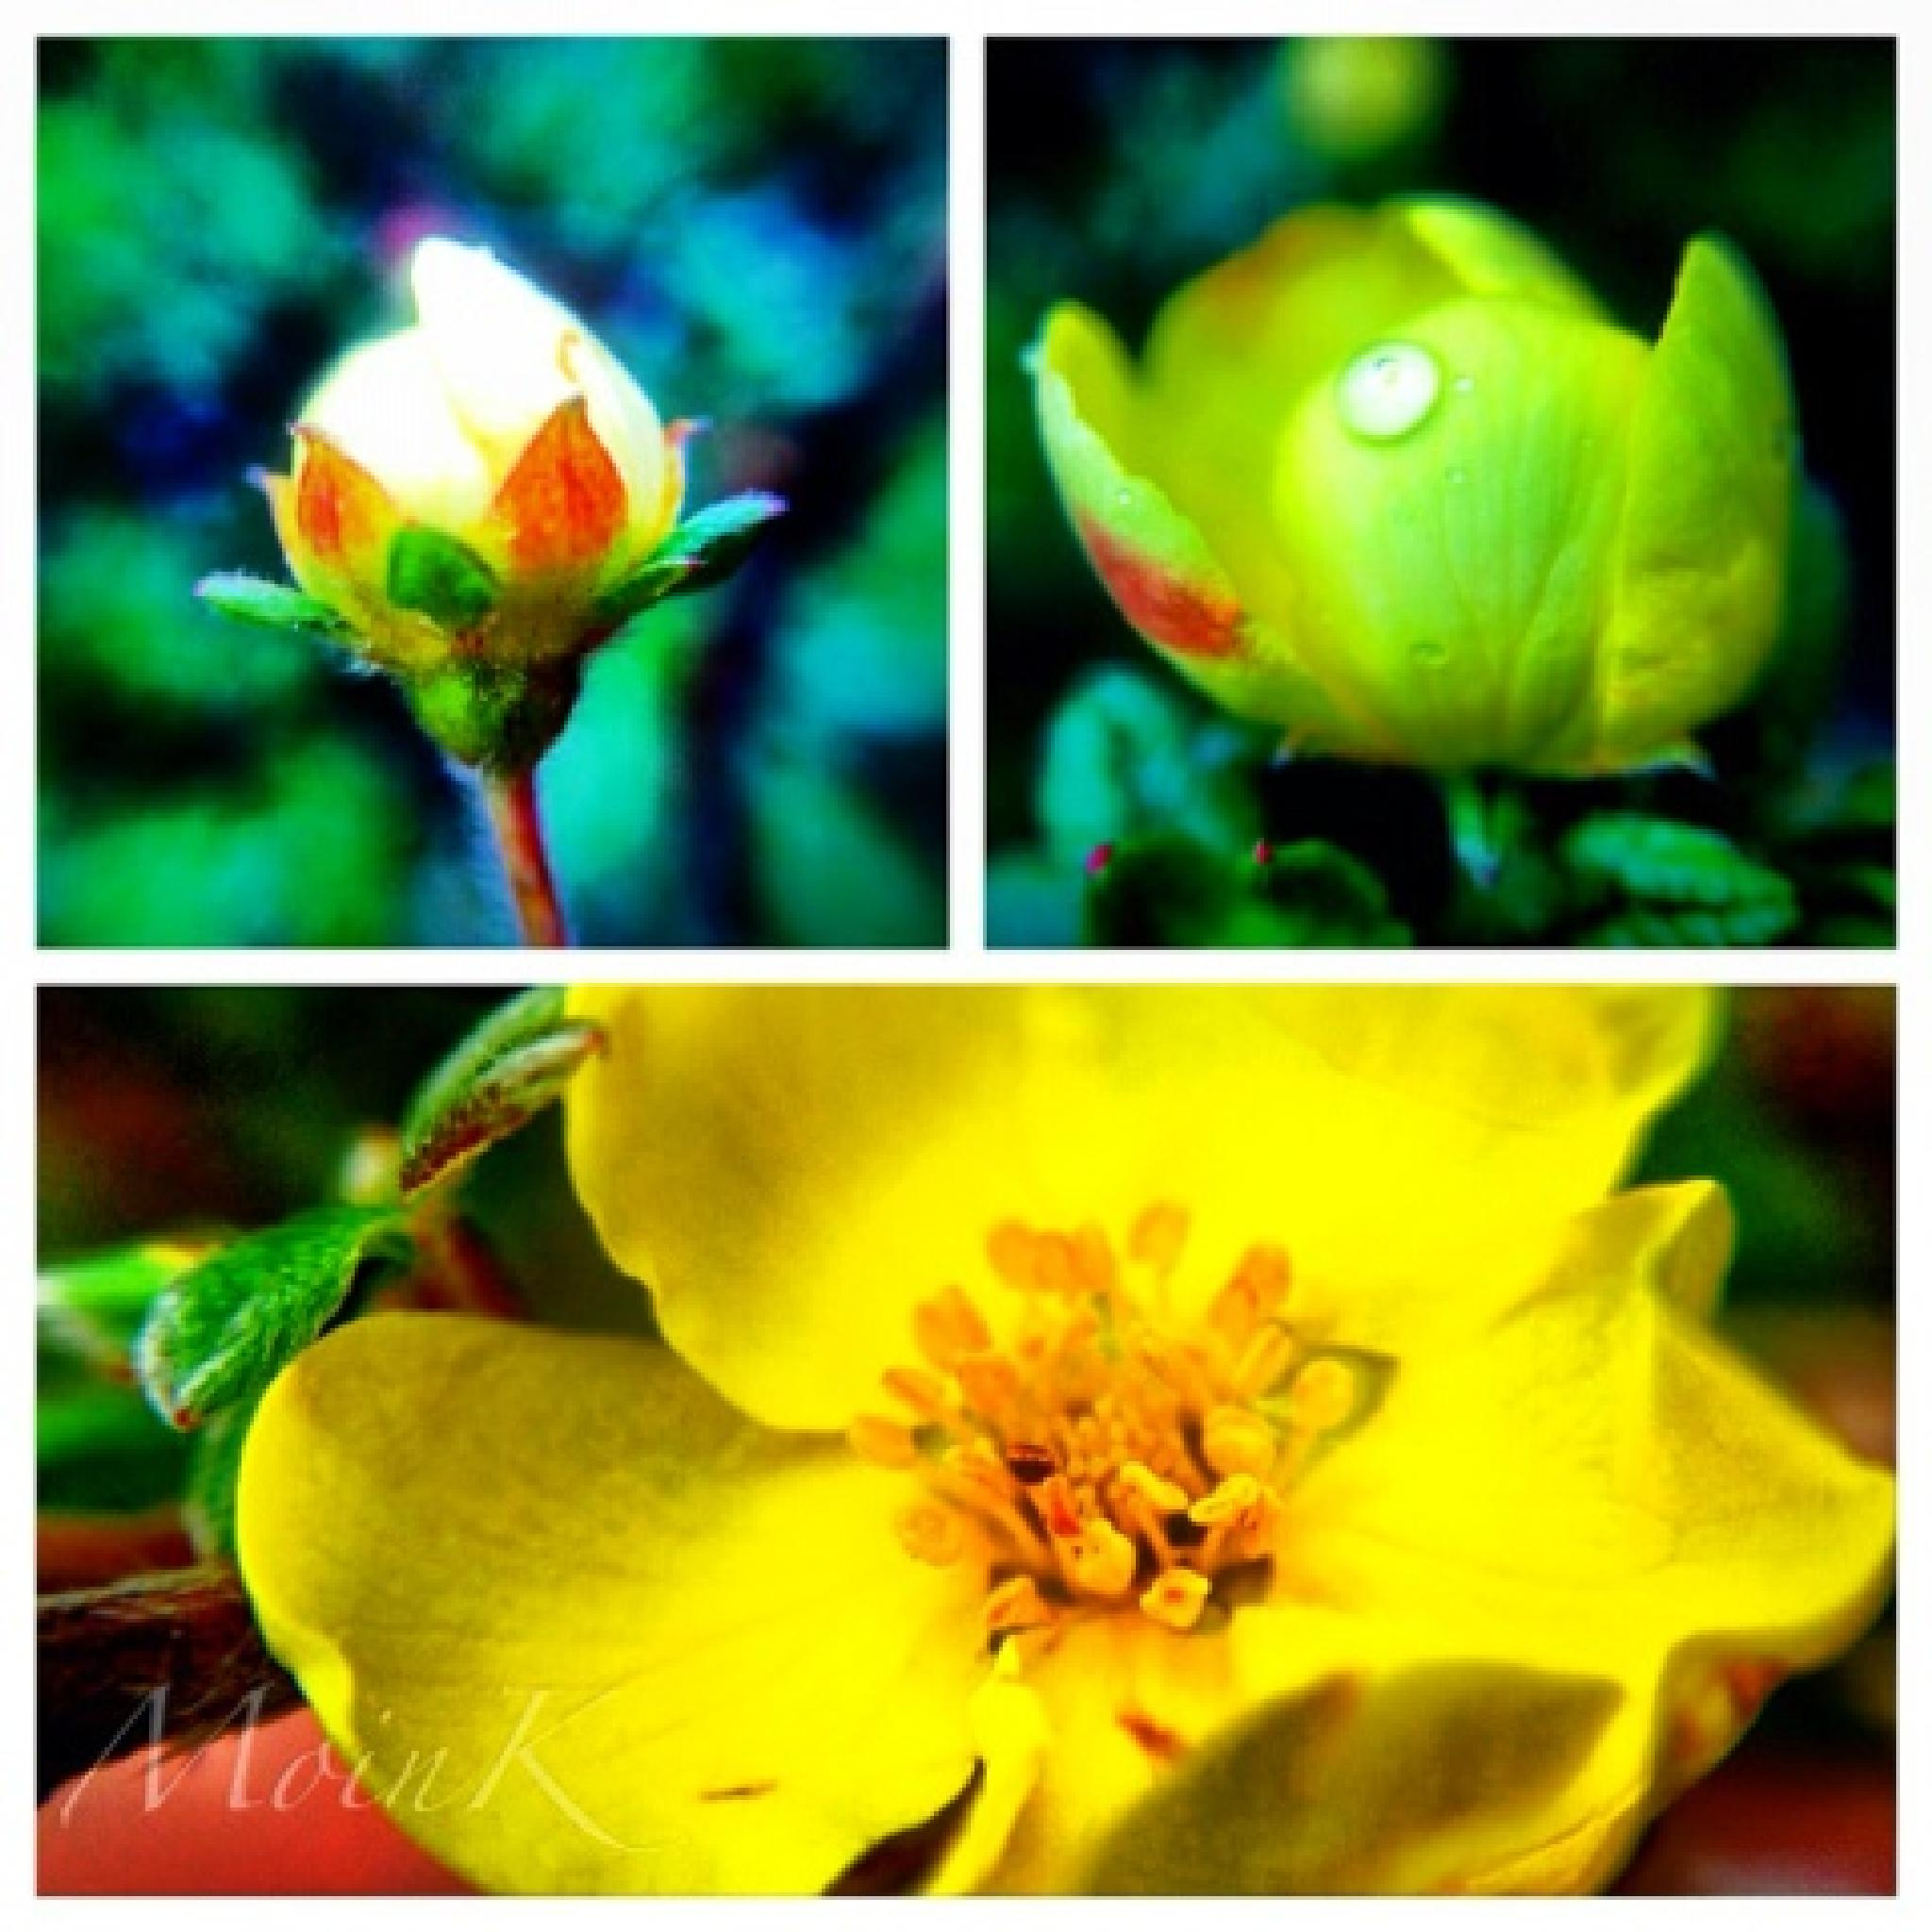 Different stages of a flower blooming by Michelangelo Macanas